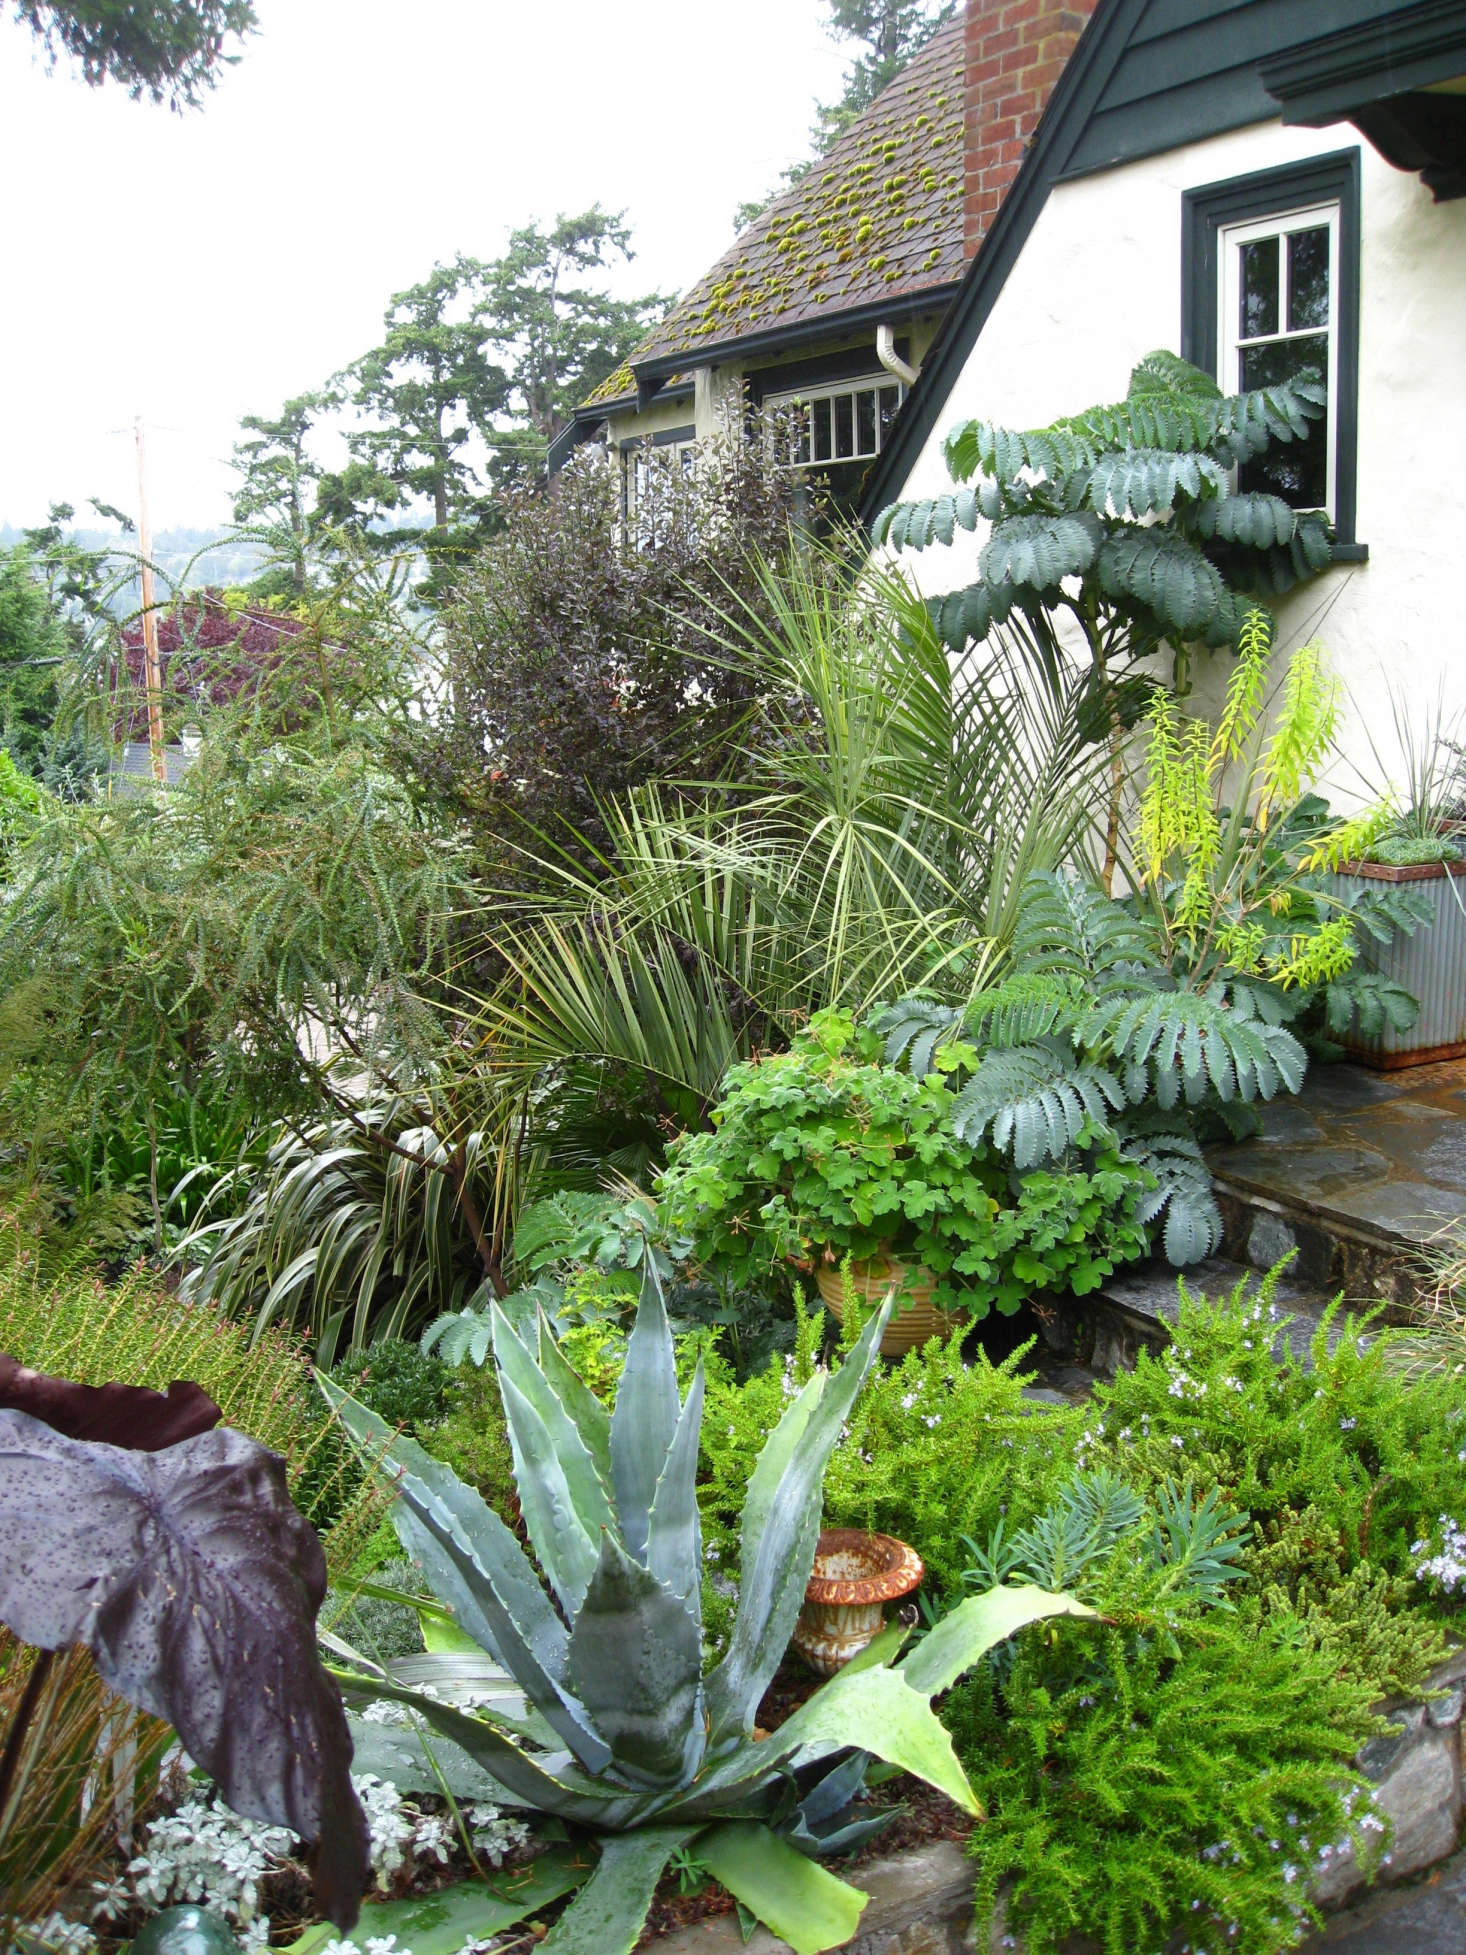 Layers of foliage envelop the front door landing, with the contrasting textures of ablue Agave americanaand creeping rosemary. The South African Melianthus major emerges from behind the palm Butia capitata, adding a &#8